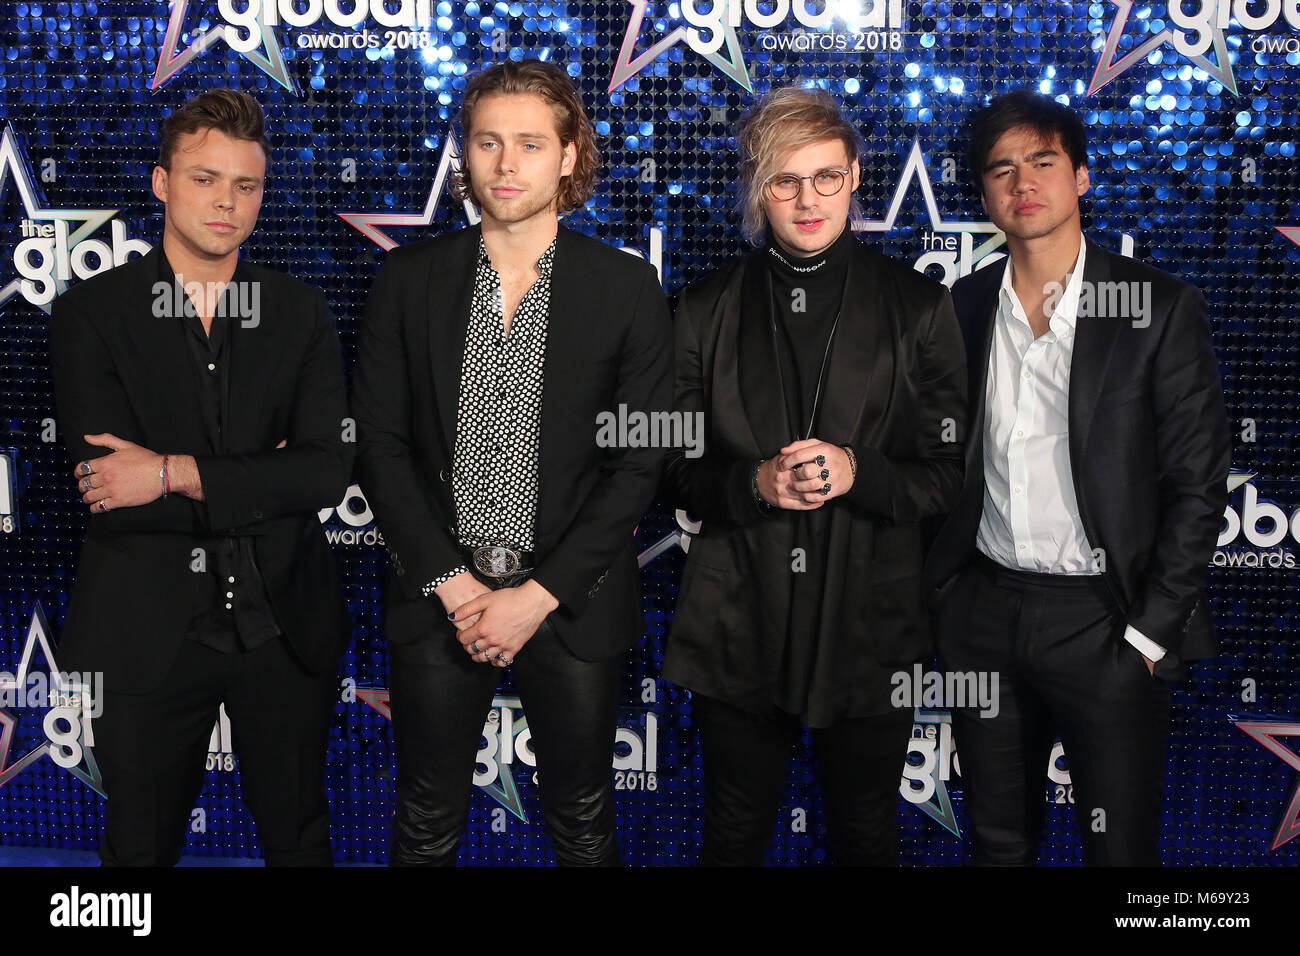 5 Seconds Of Summer Luke Hemmings Ashton Irwin Michael Clifford Calum Hood Attends The Global Awards And New Awards Show Hosted By Global